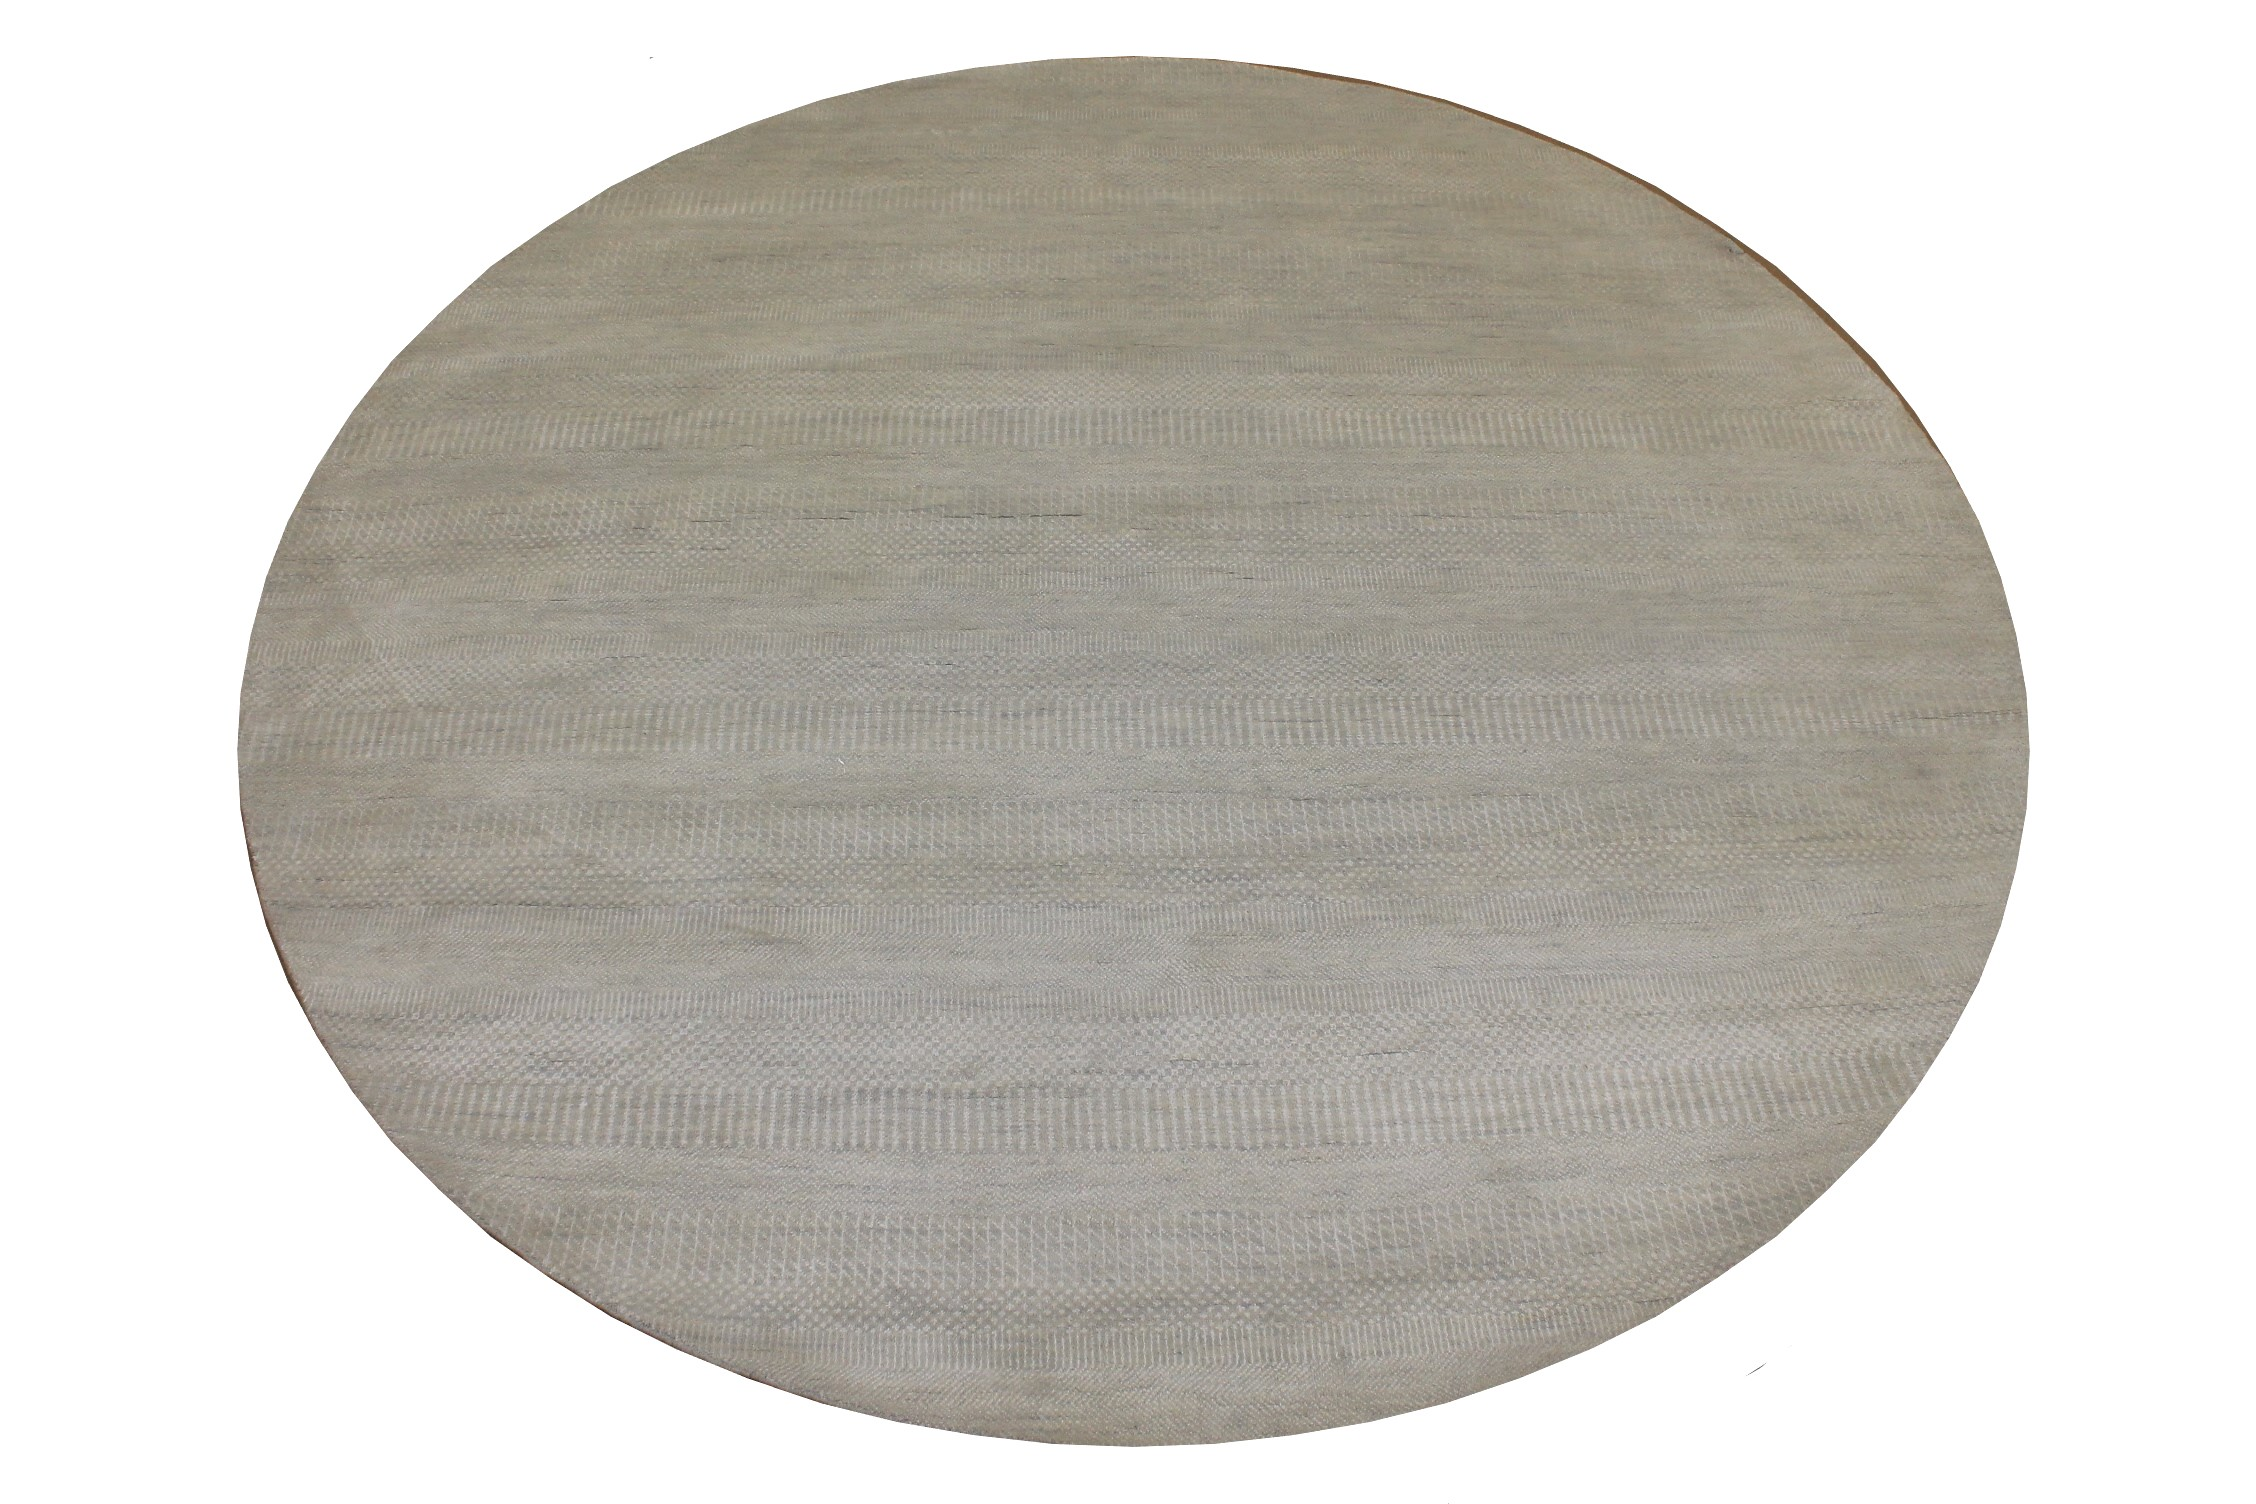 8 ft. Round & Square Casual Hand Knotted Wool & Viscose Area Rug - MR024926